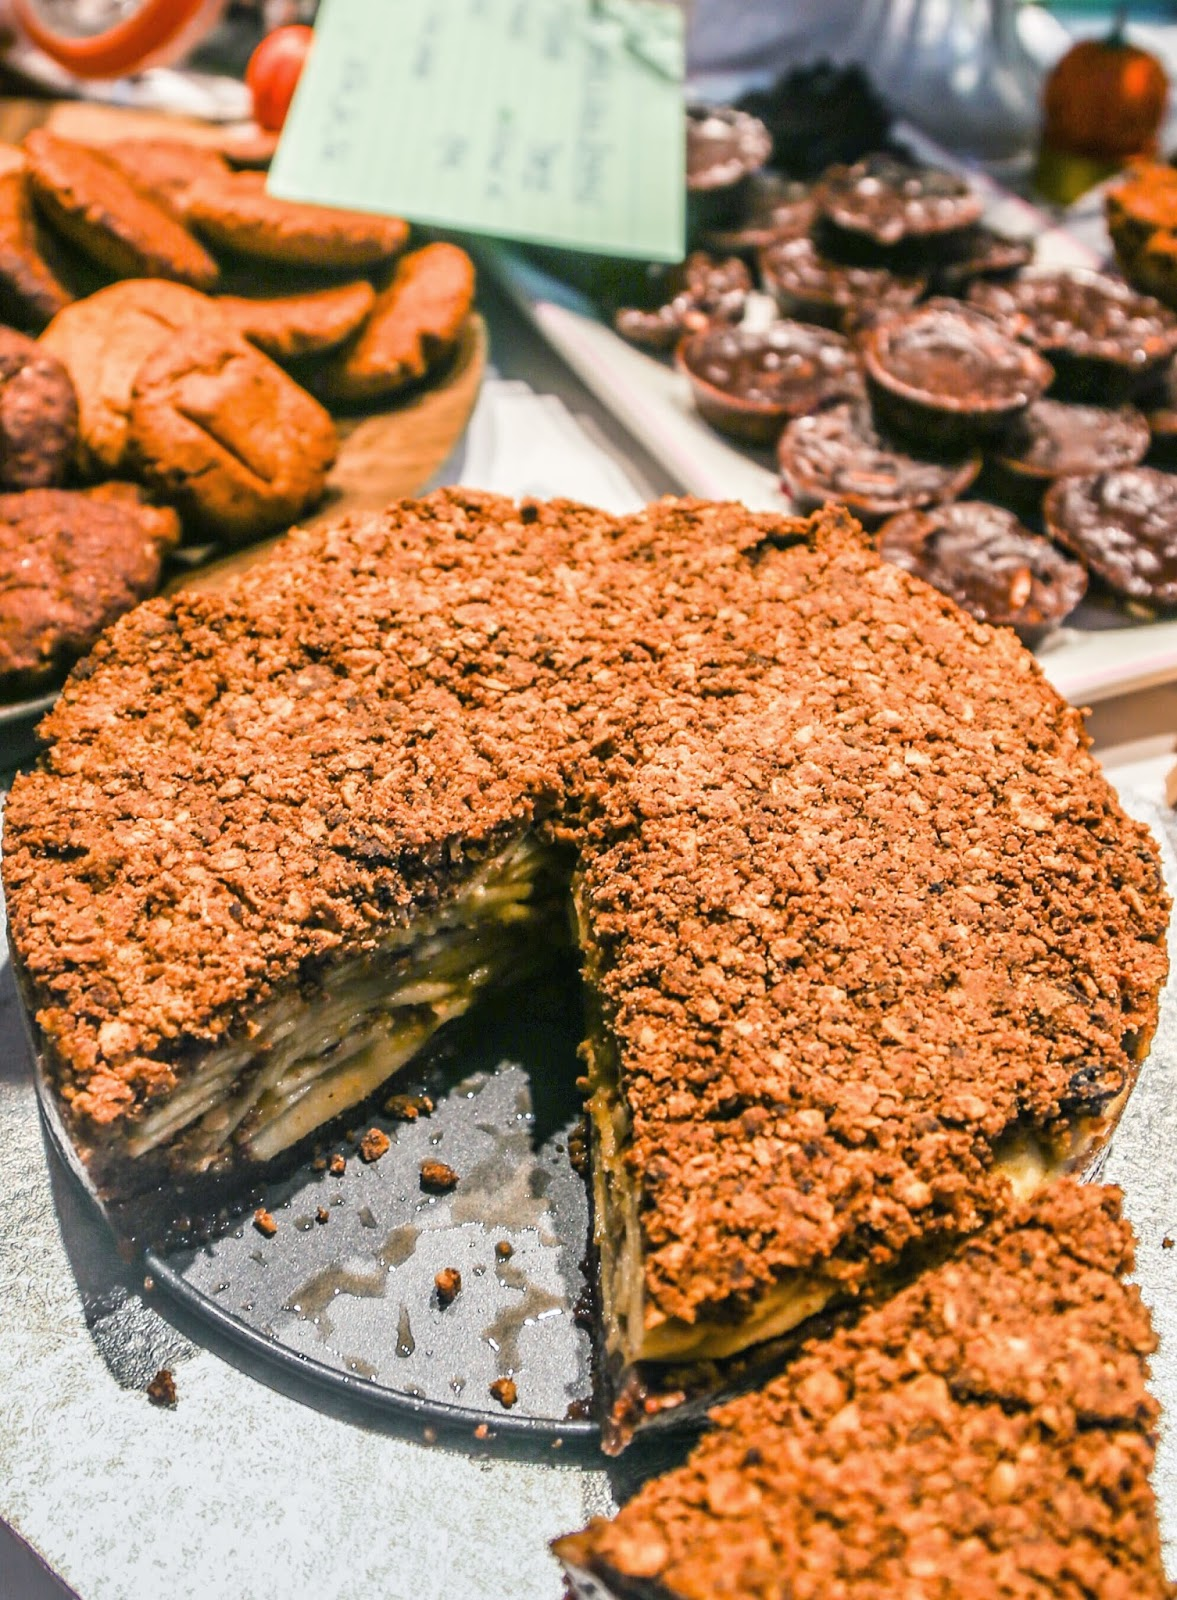 Apple pie on a chocolate brownie crust - gluten free and vegan